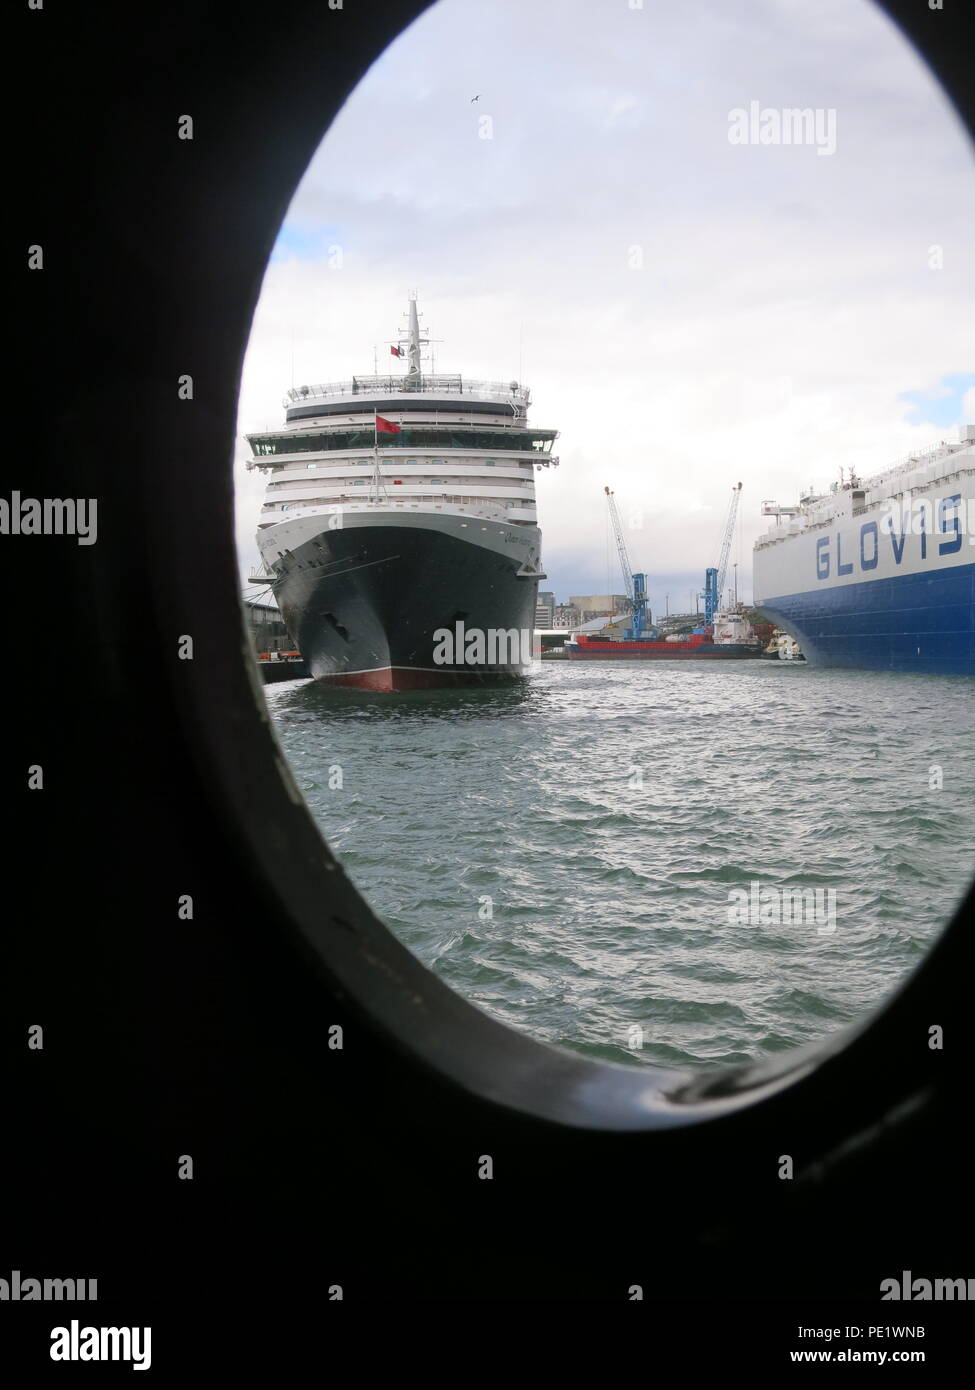 A view of the Cunard cruise liner, Queen Victoria, framed by the porthole on the SS Shieldhall, Britain's largest working steamship. Stock Photo